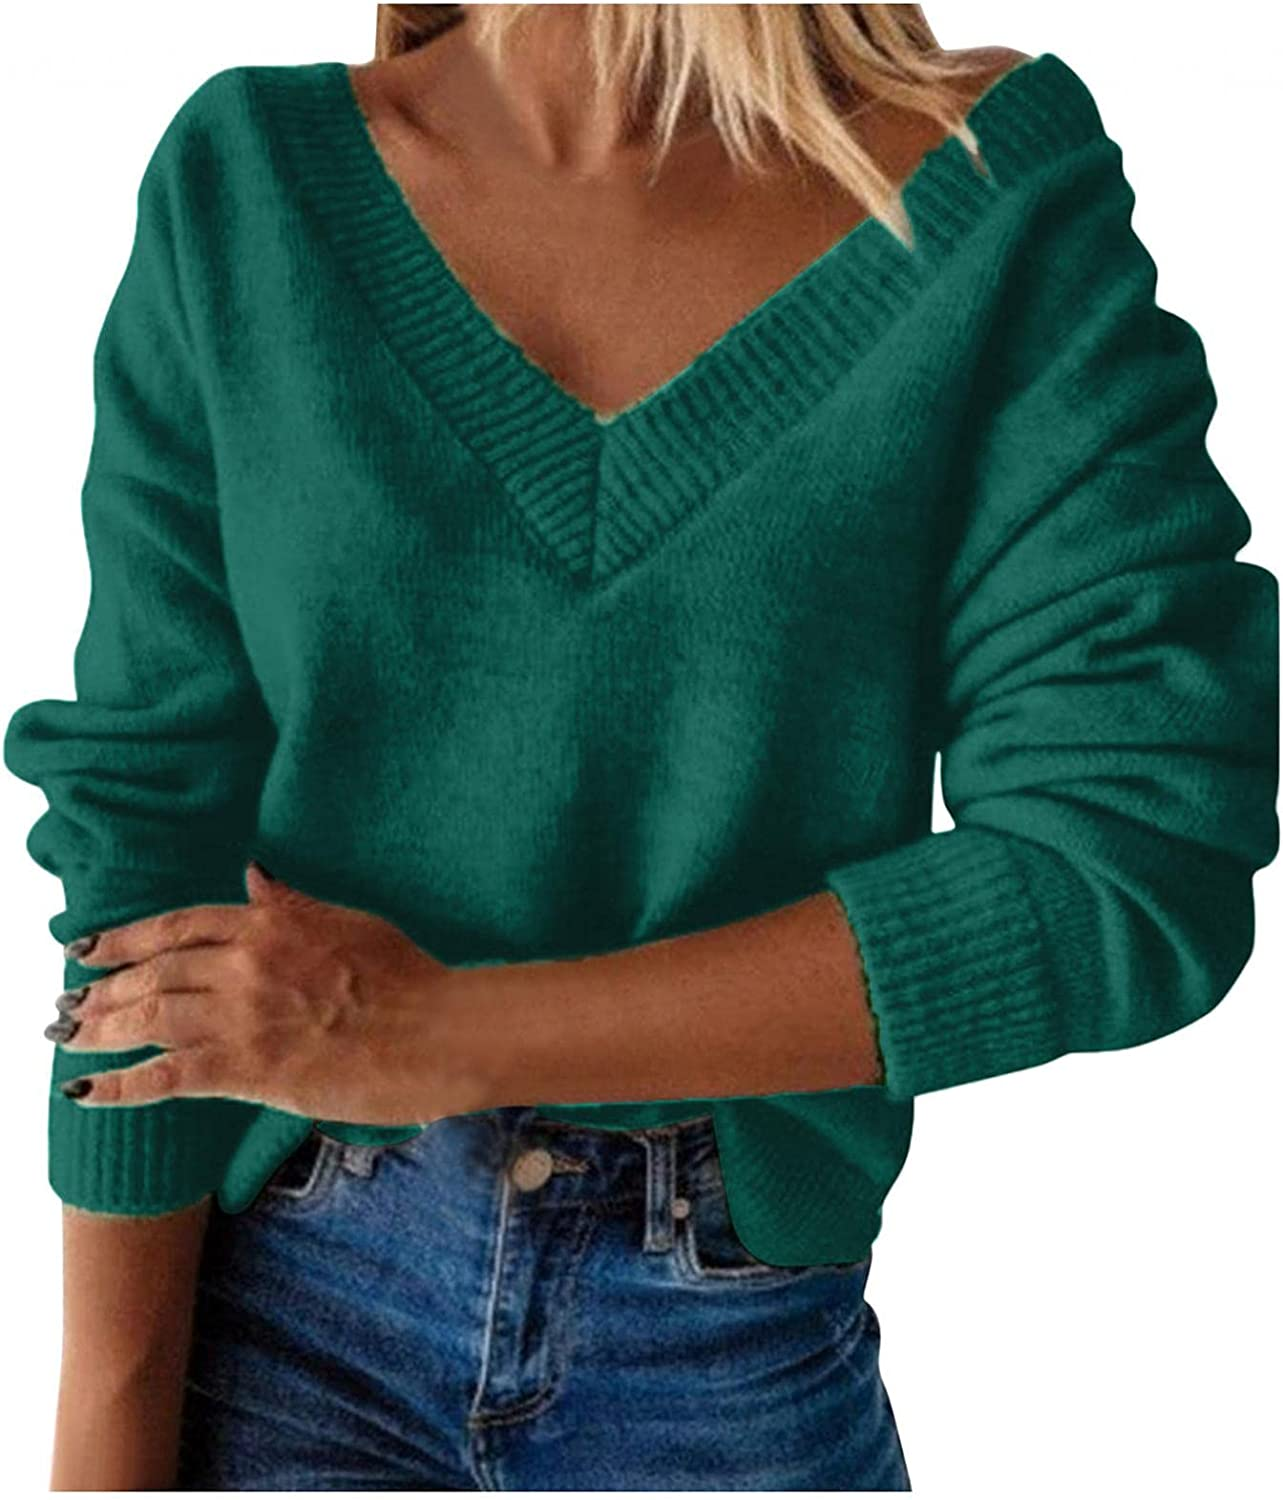 Hemlock Women V Neck Sweaters Solid Color Long Sleeve Knit Tops Fall Autumn Pullovers Sweater Outwear